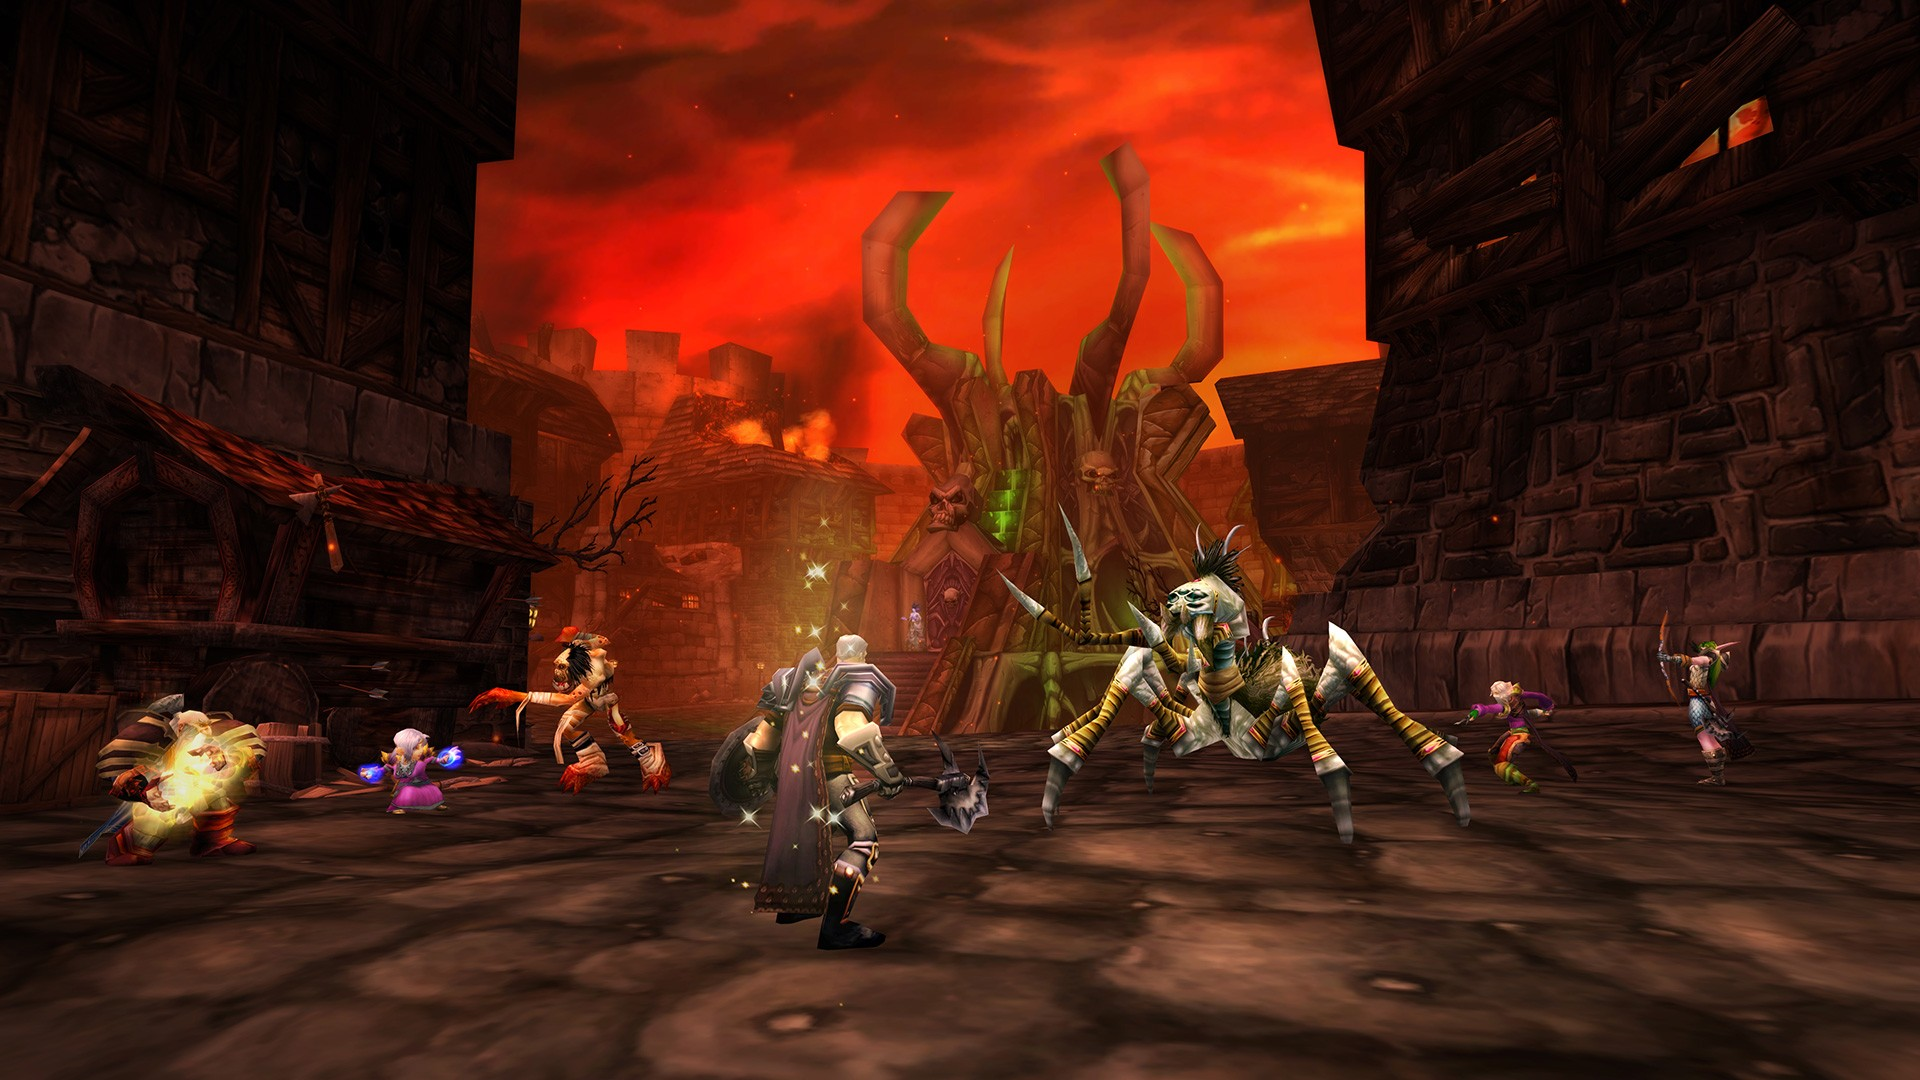 Classic is a unique World of Warcraft experience that in 2006 created unprecedented fandom